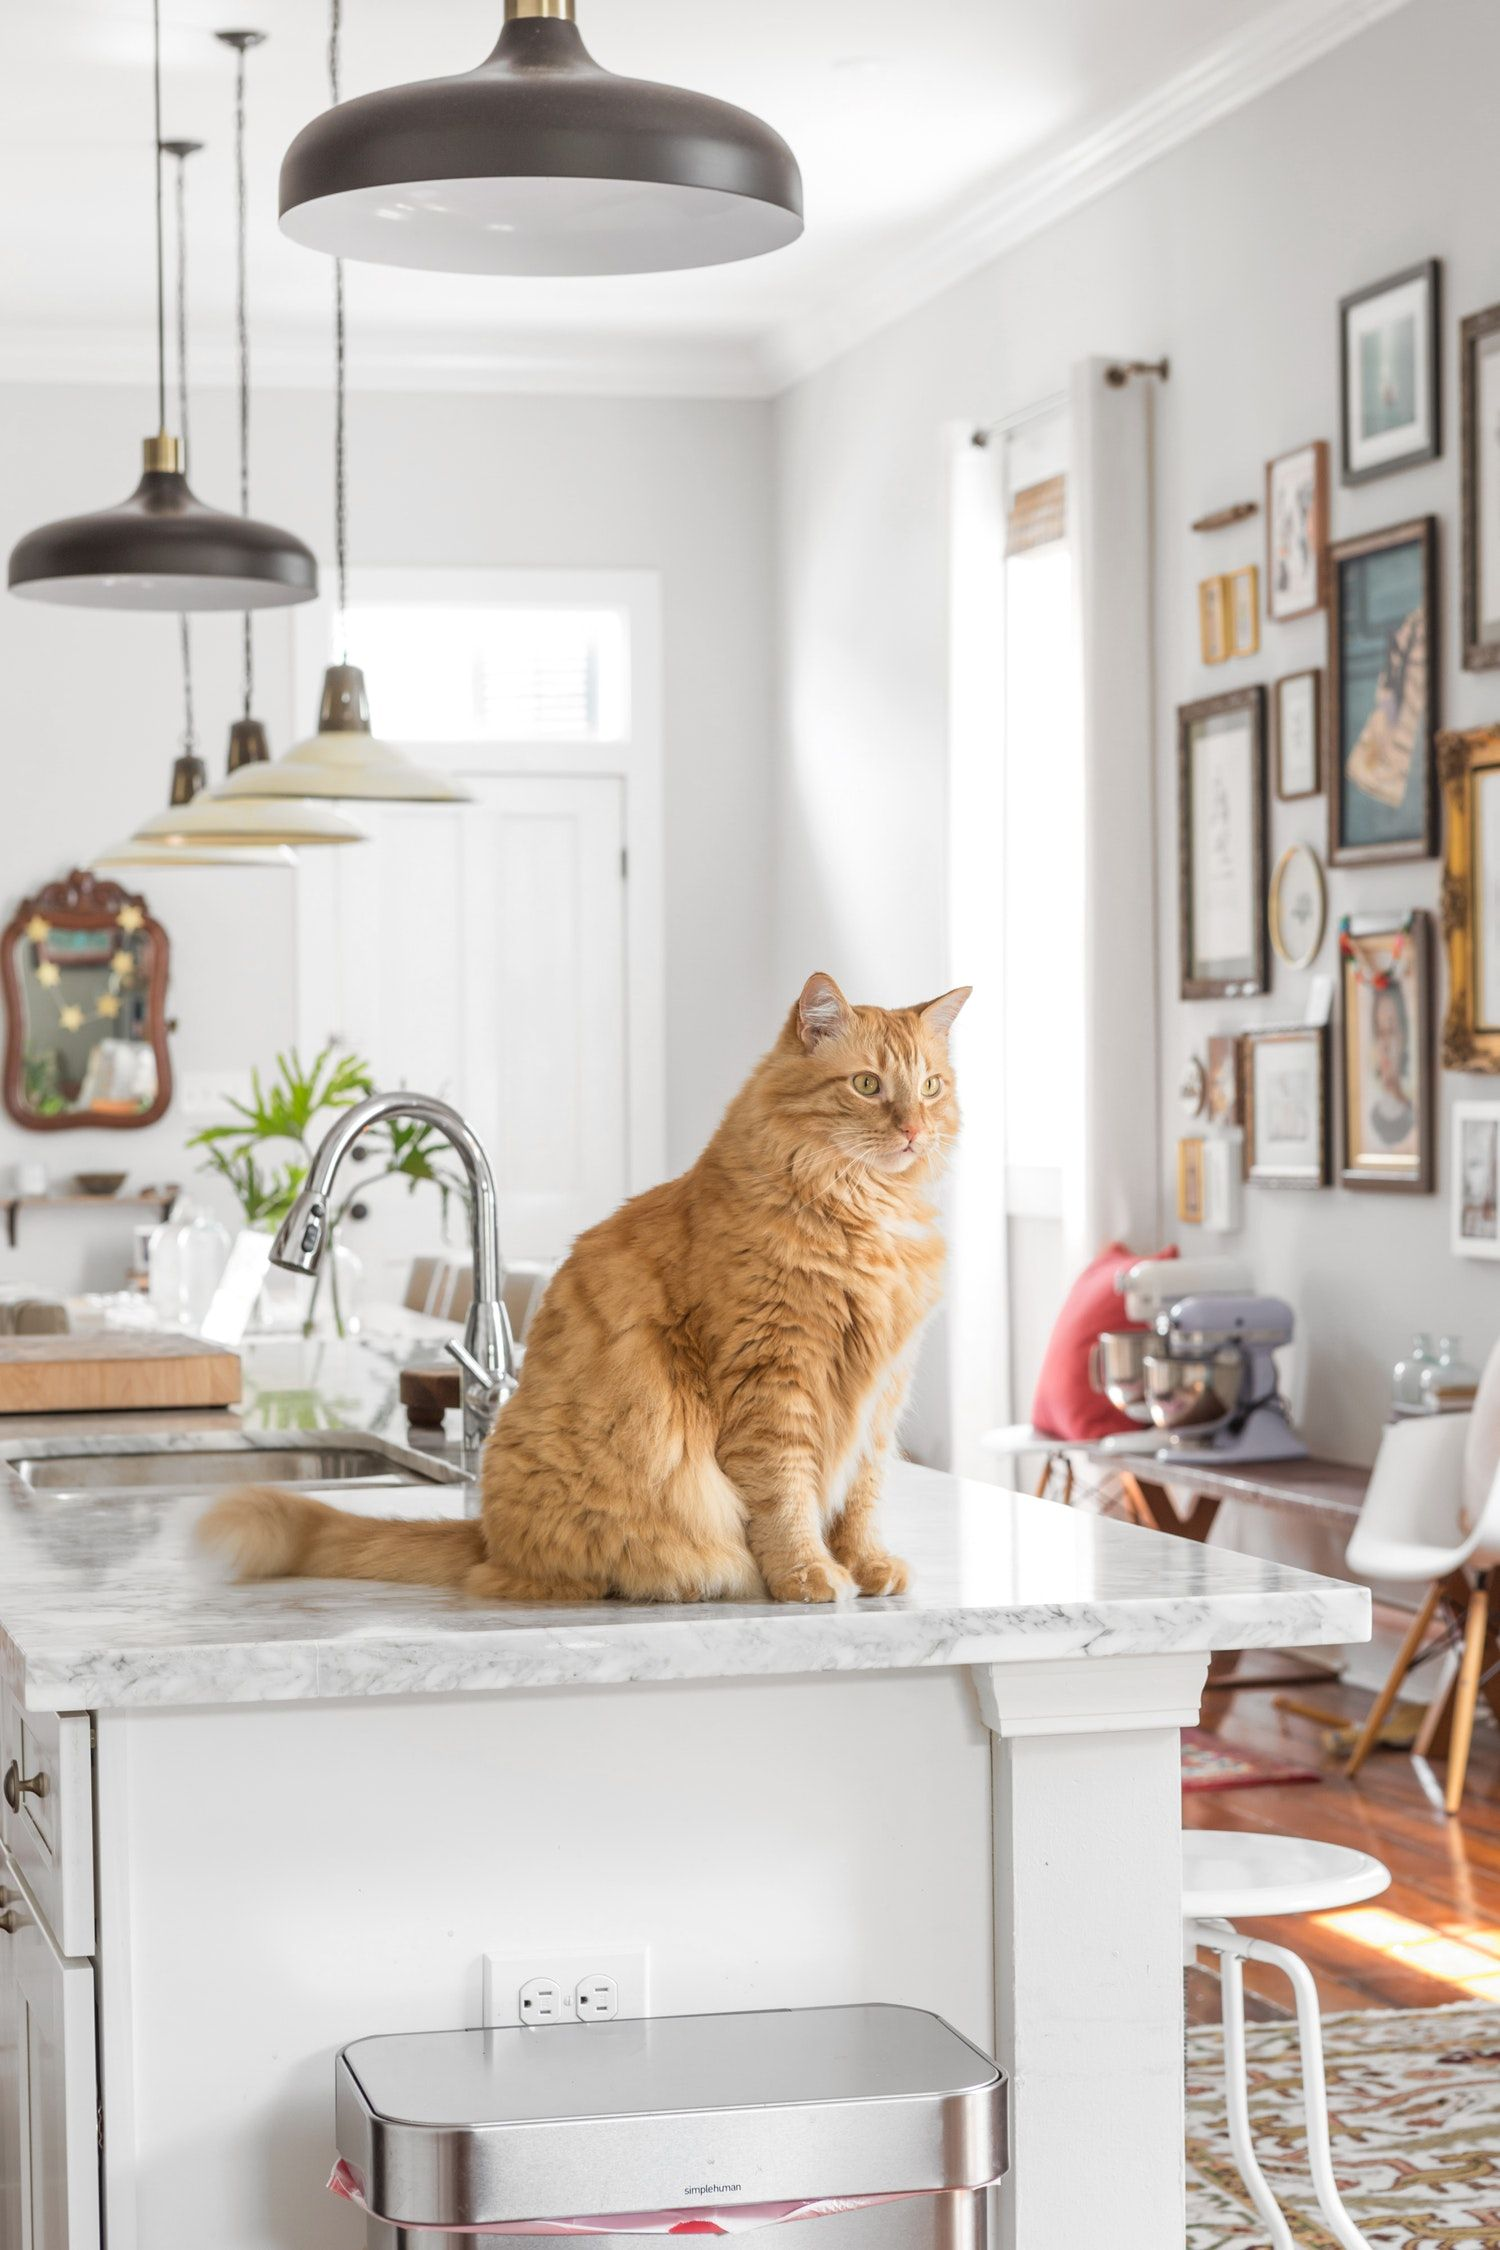 how to keep cat off countertops